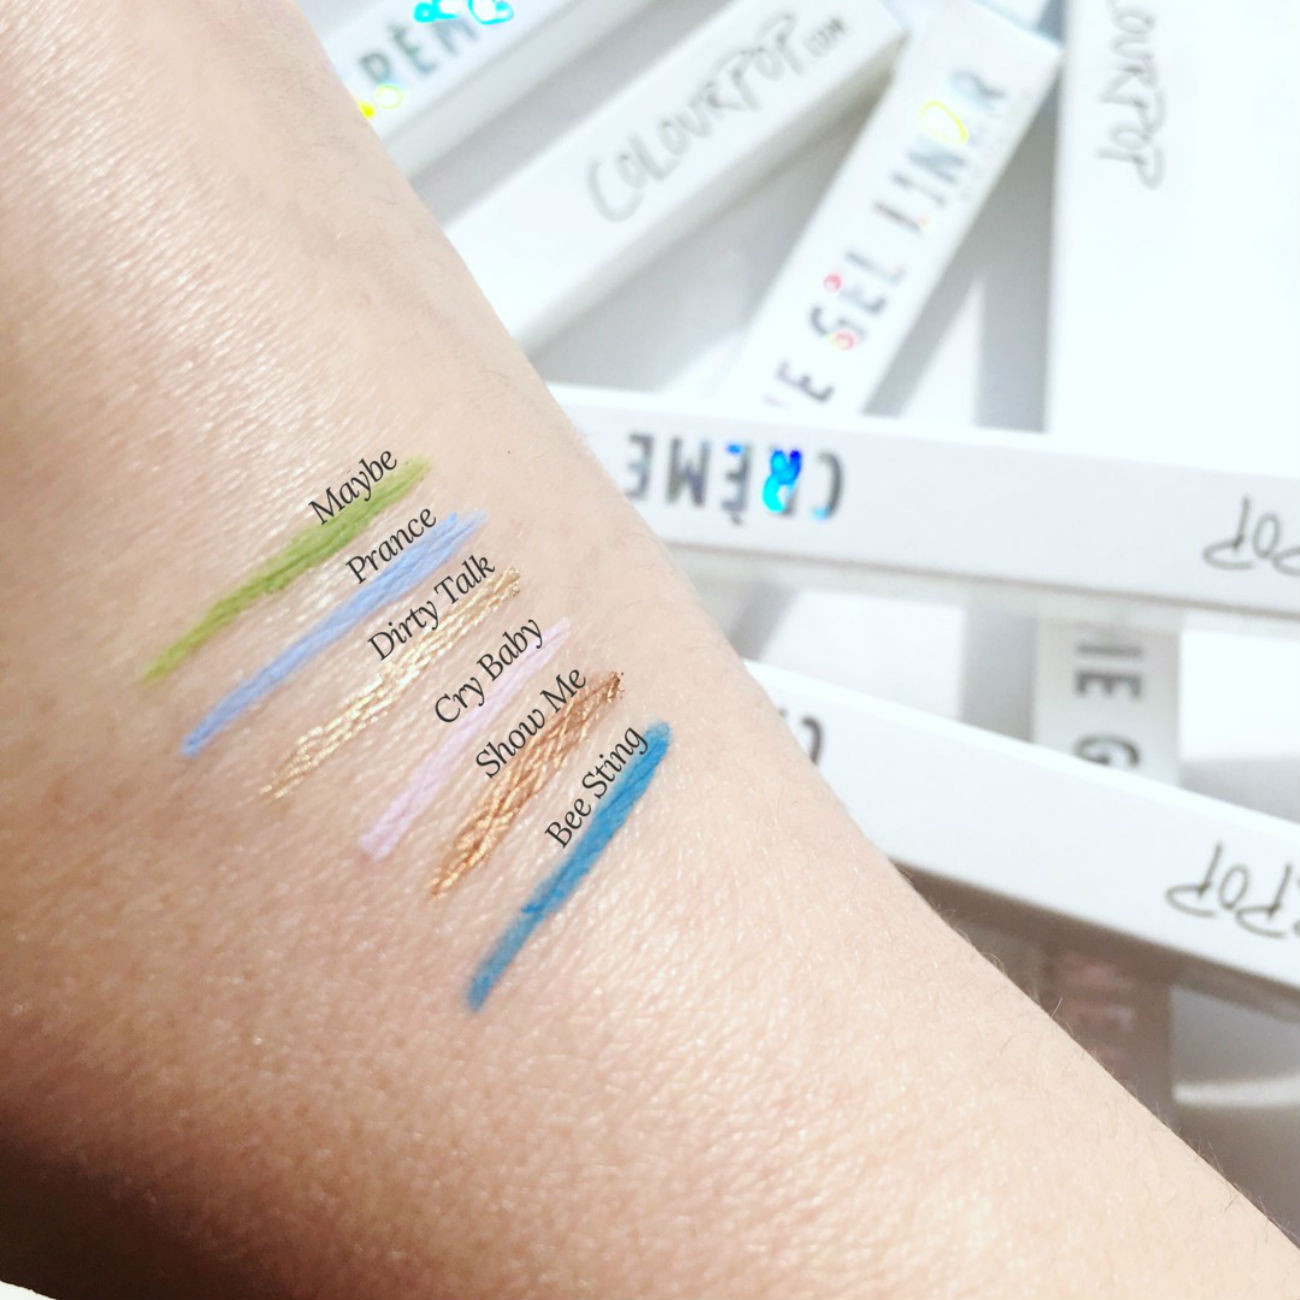 Review of Colourpop Creme Gel Liners, swatches